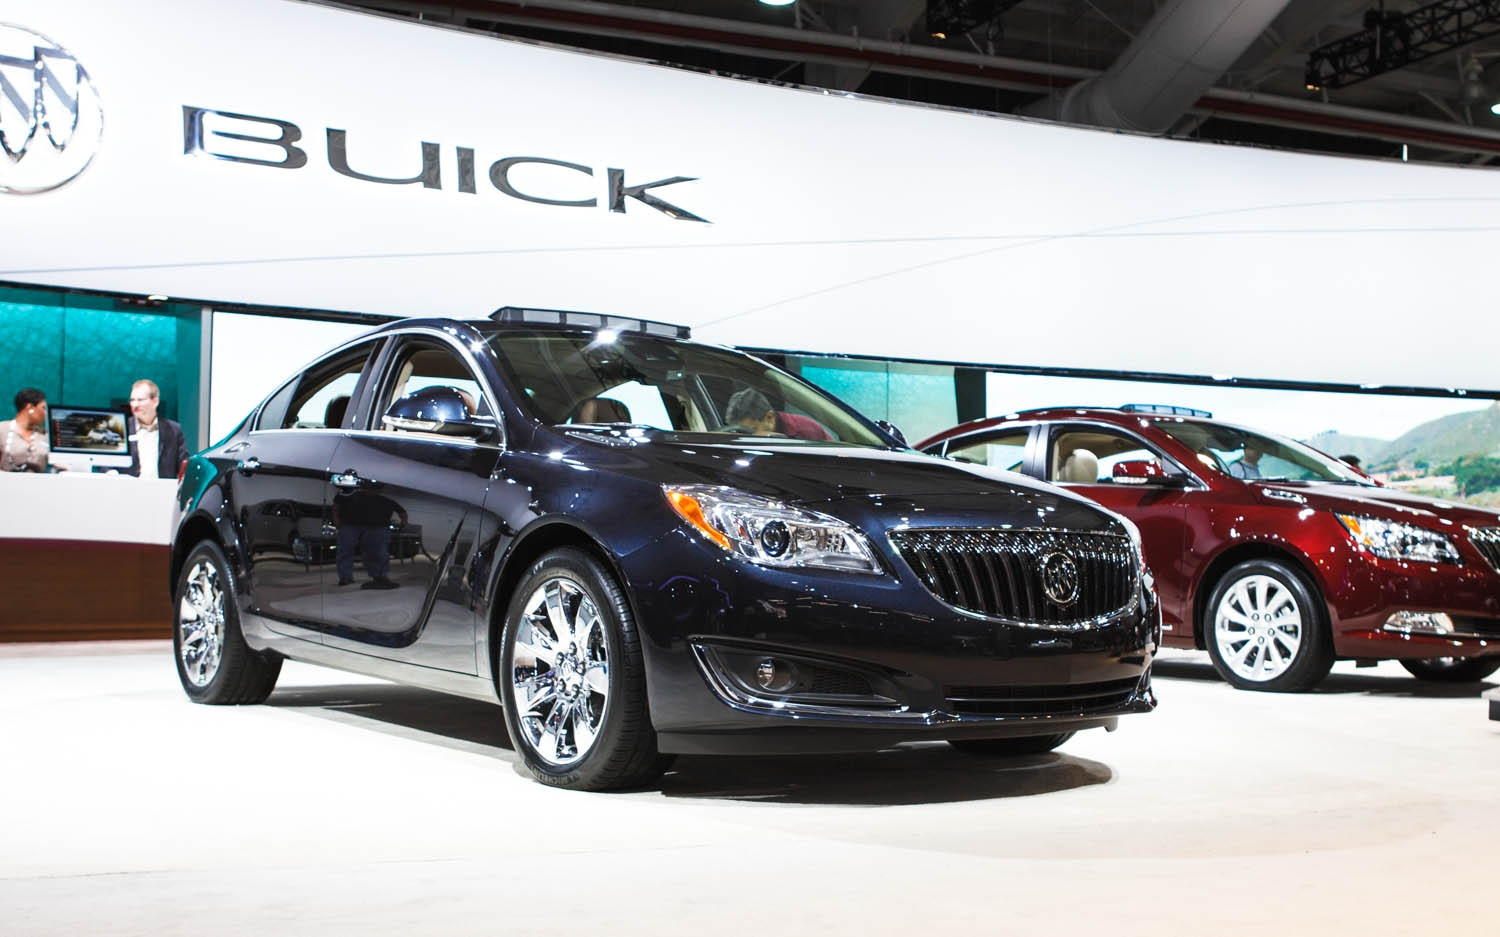 2014 Buick Regal Turbo Front Three Quarters 21